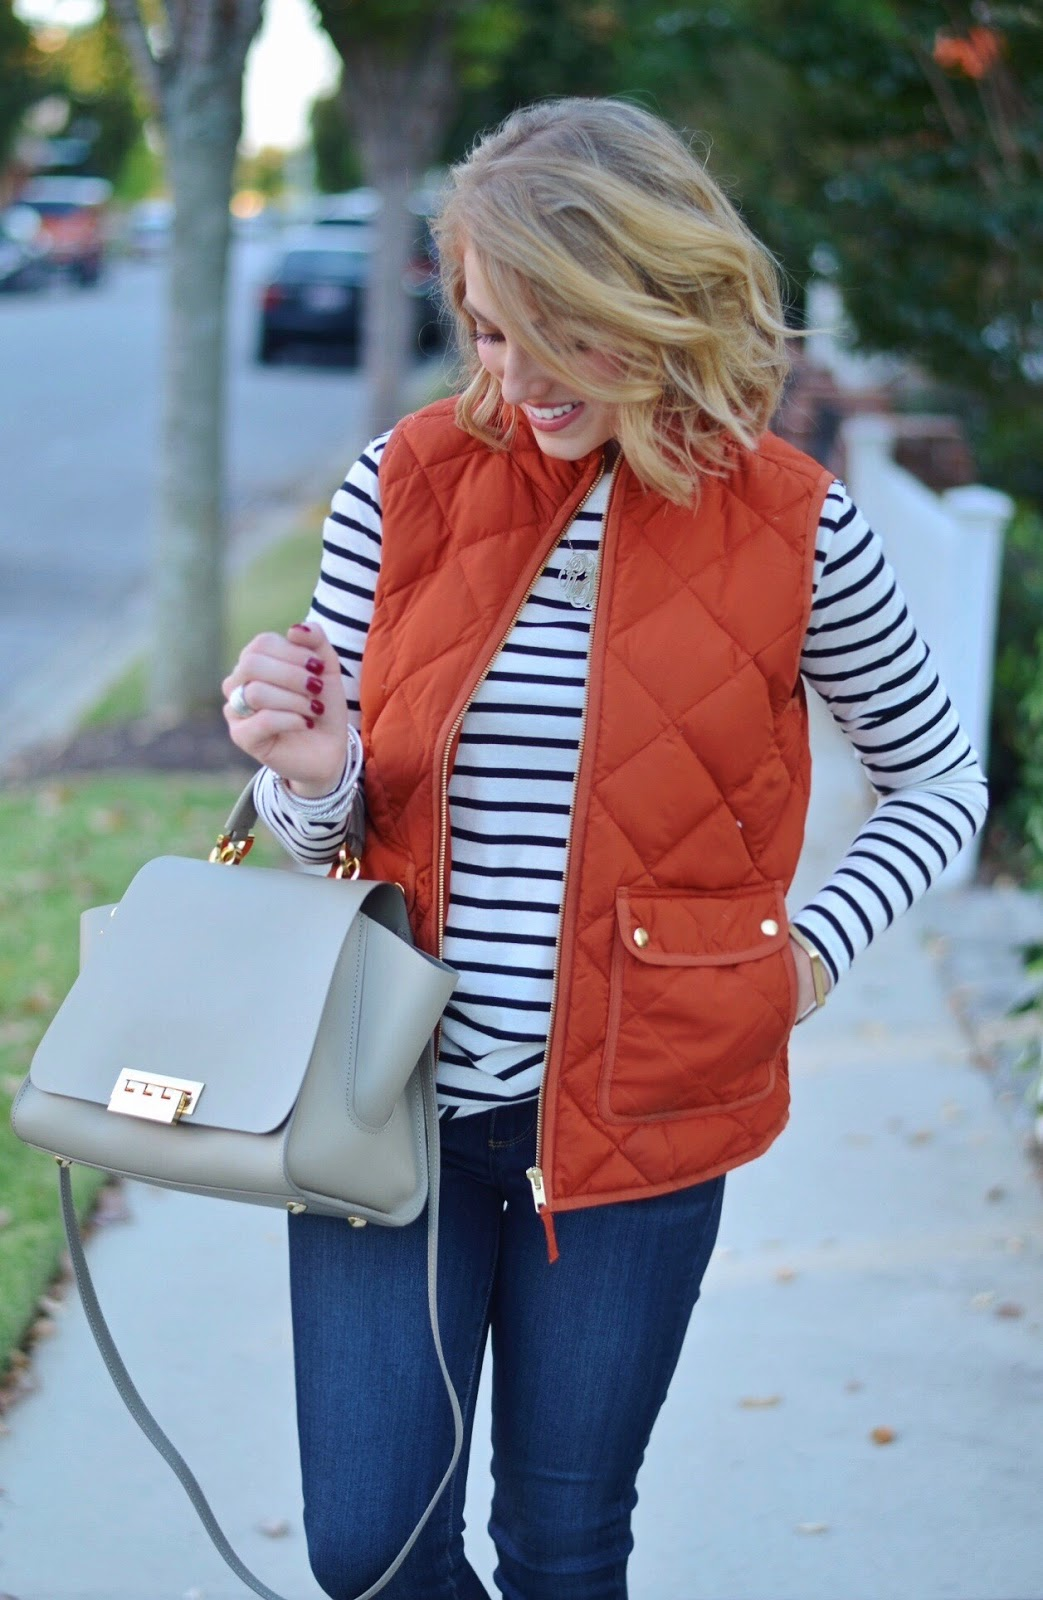 J.Crew Excursion Vest + Striped Tee